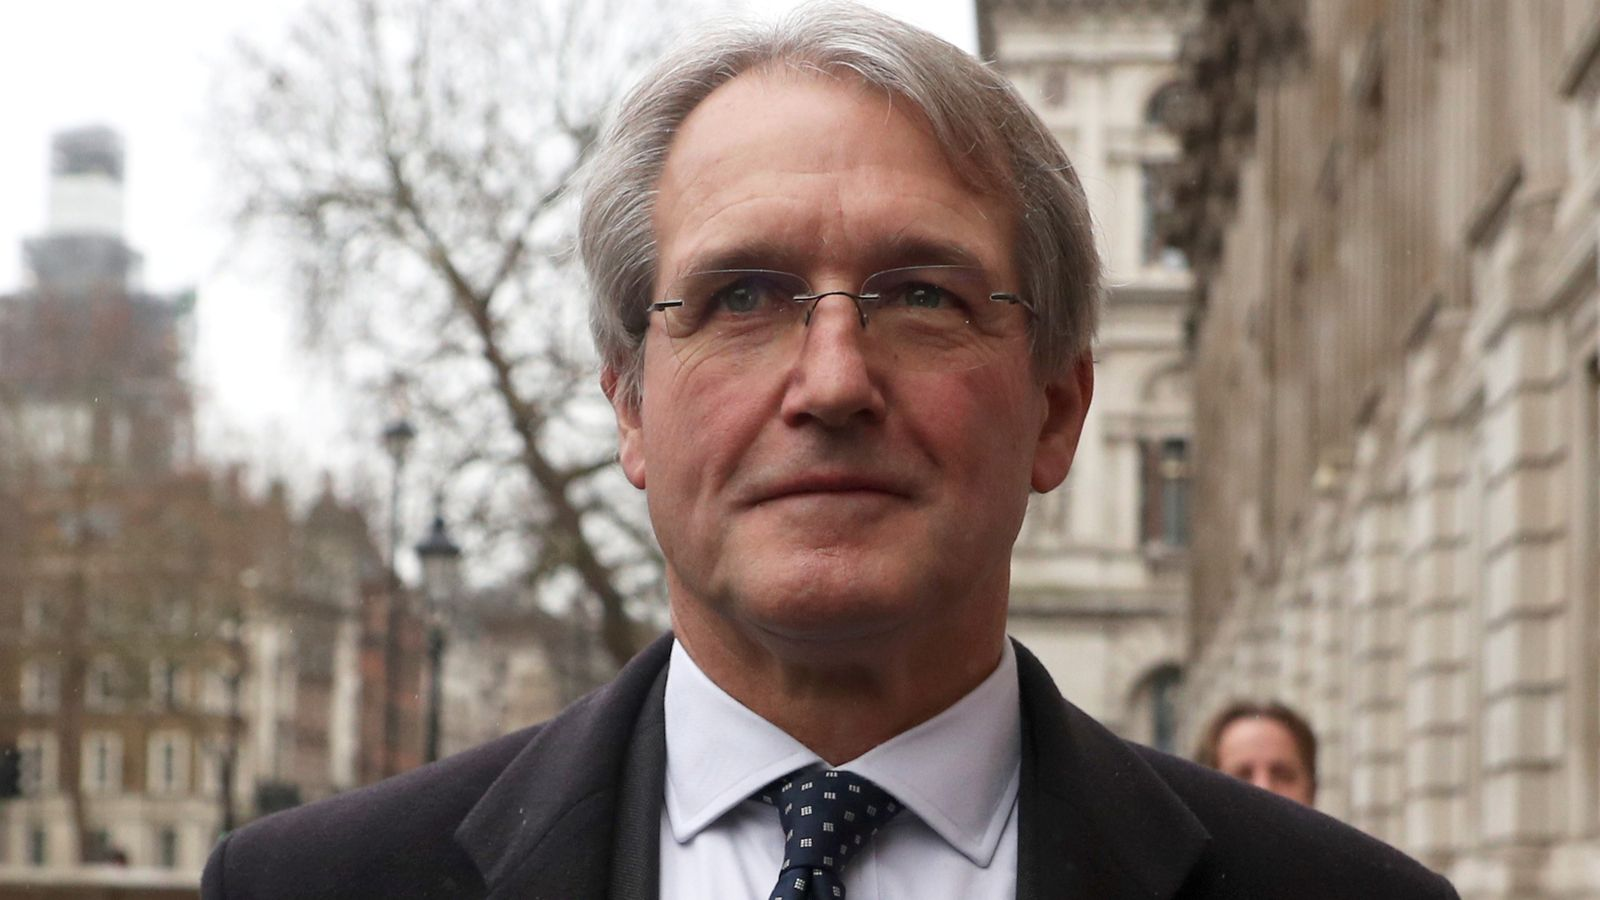 Owen Paterson: Ex-Tory minister faces suspension after lobbying on behalf of two companies